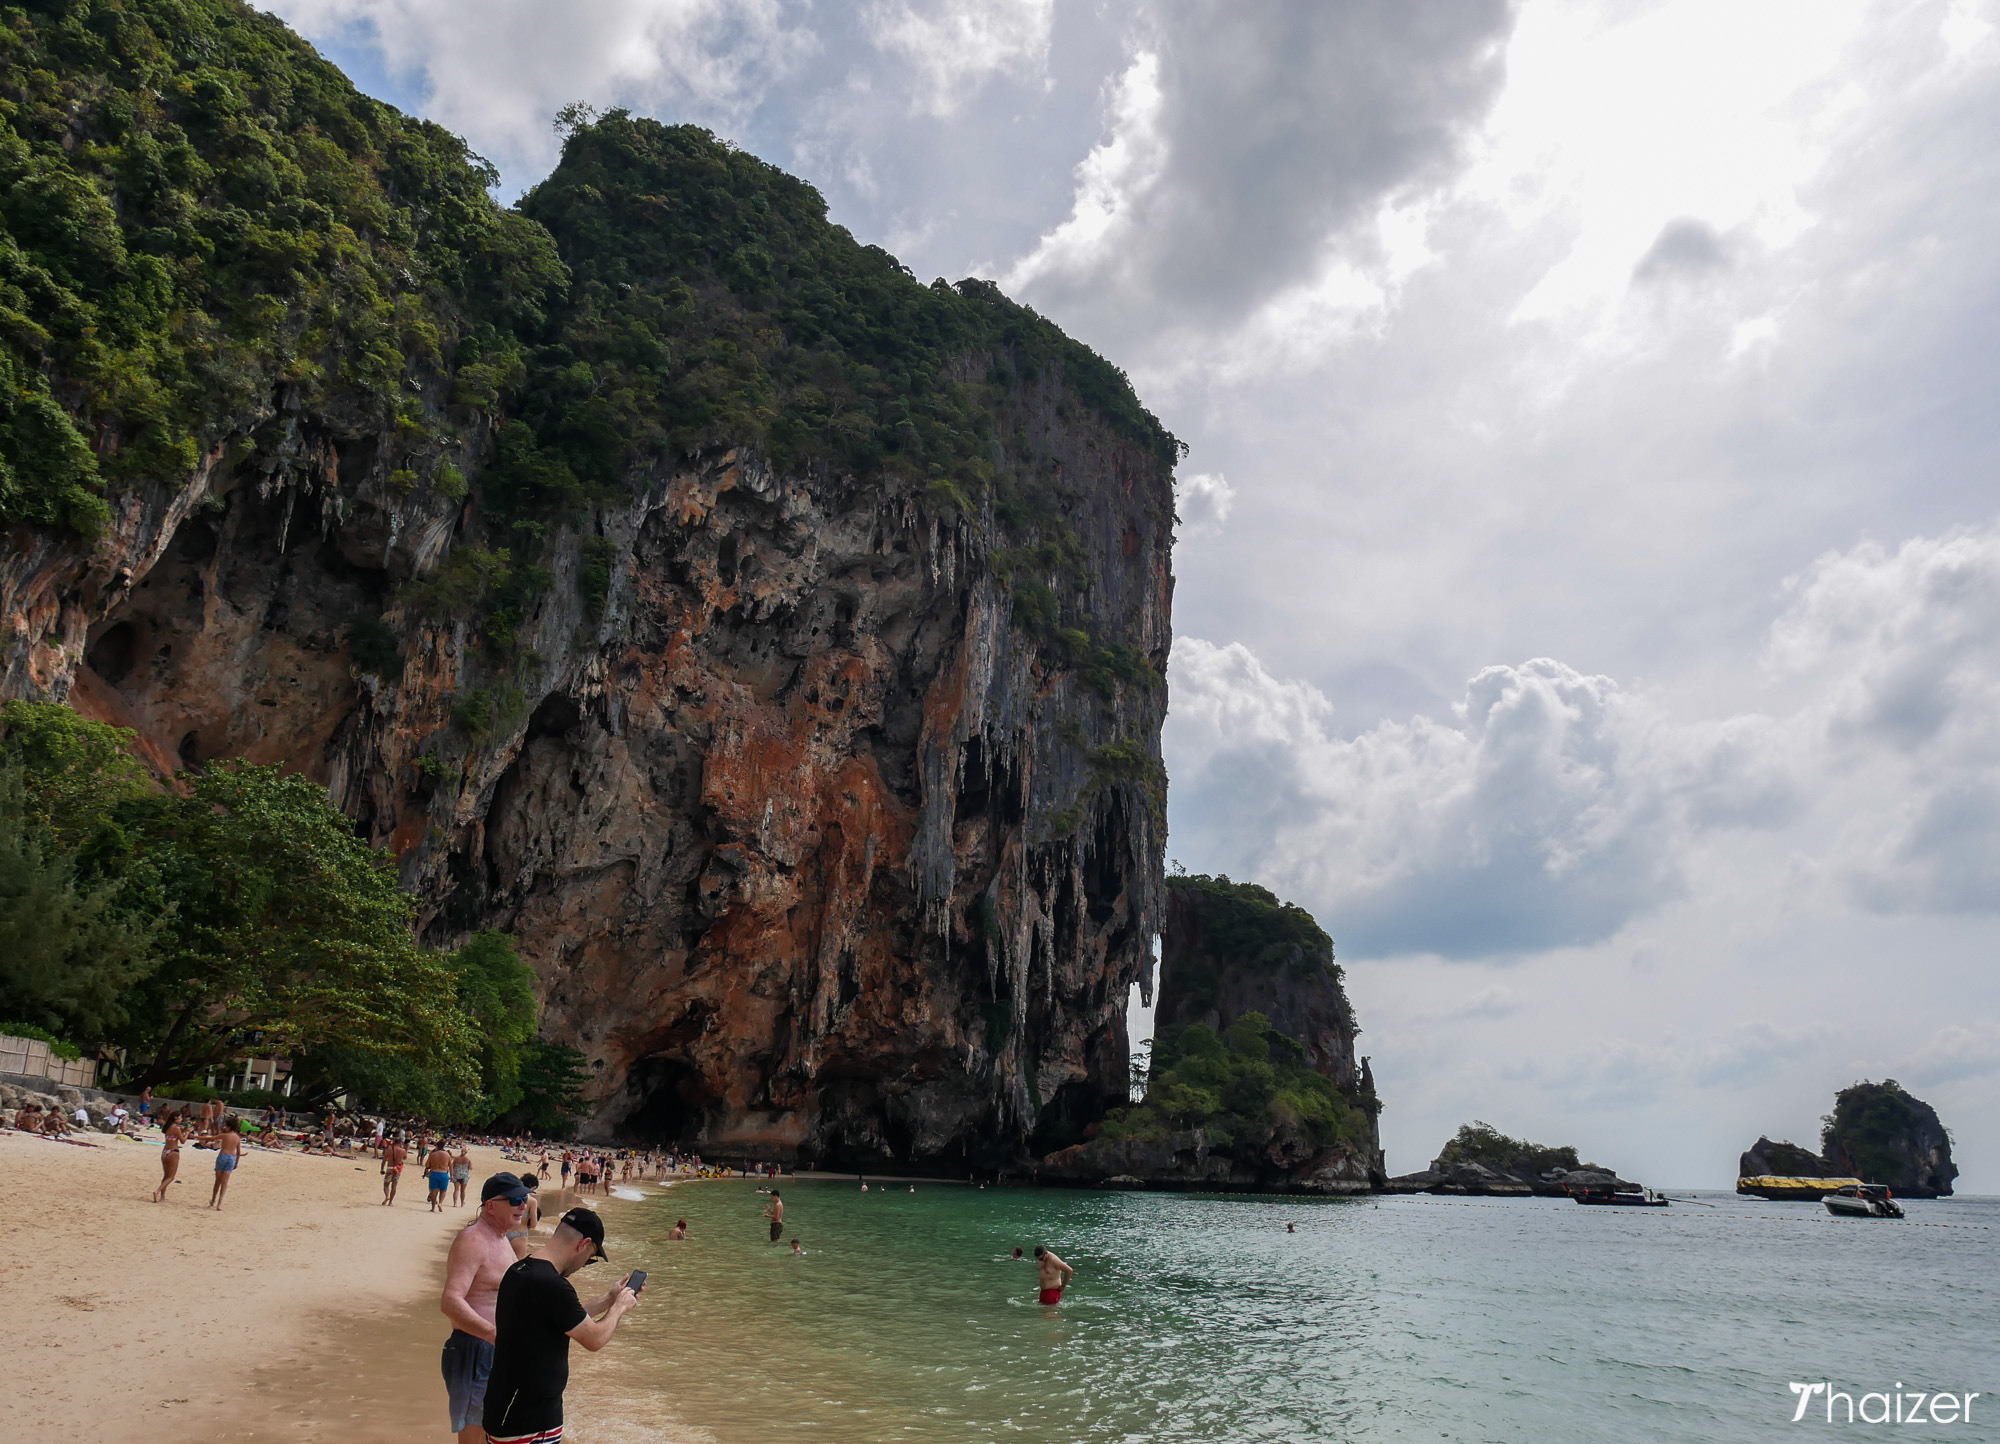 view looking towards Phra Nang Cave, Krabi